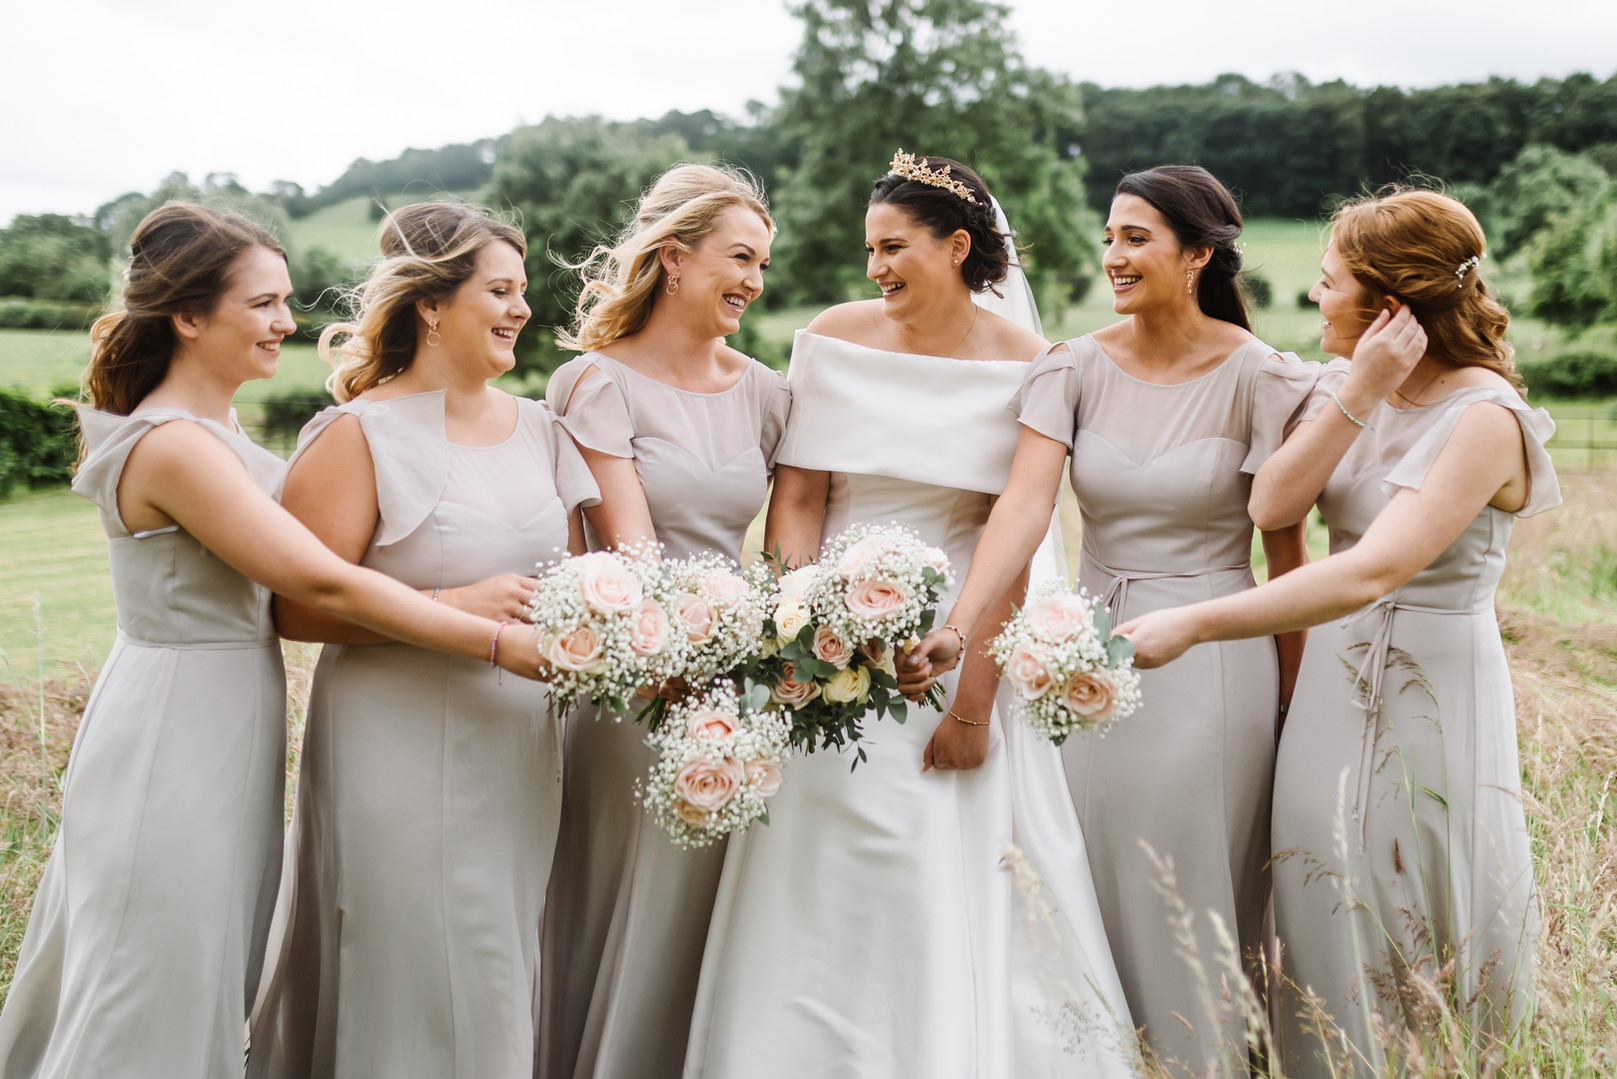 Bridesmaids by Chloe Ely Photography Wedding Photographer